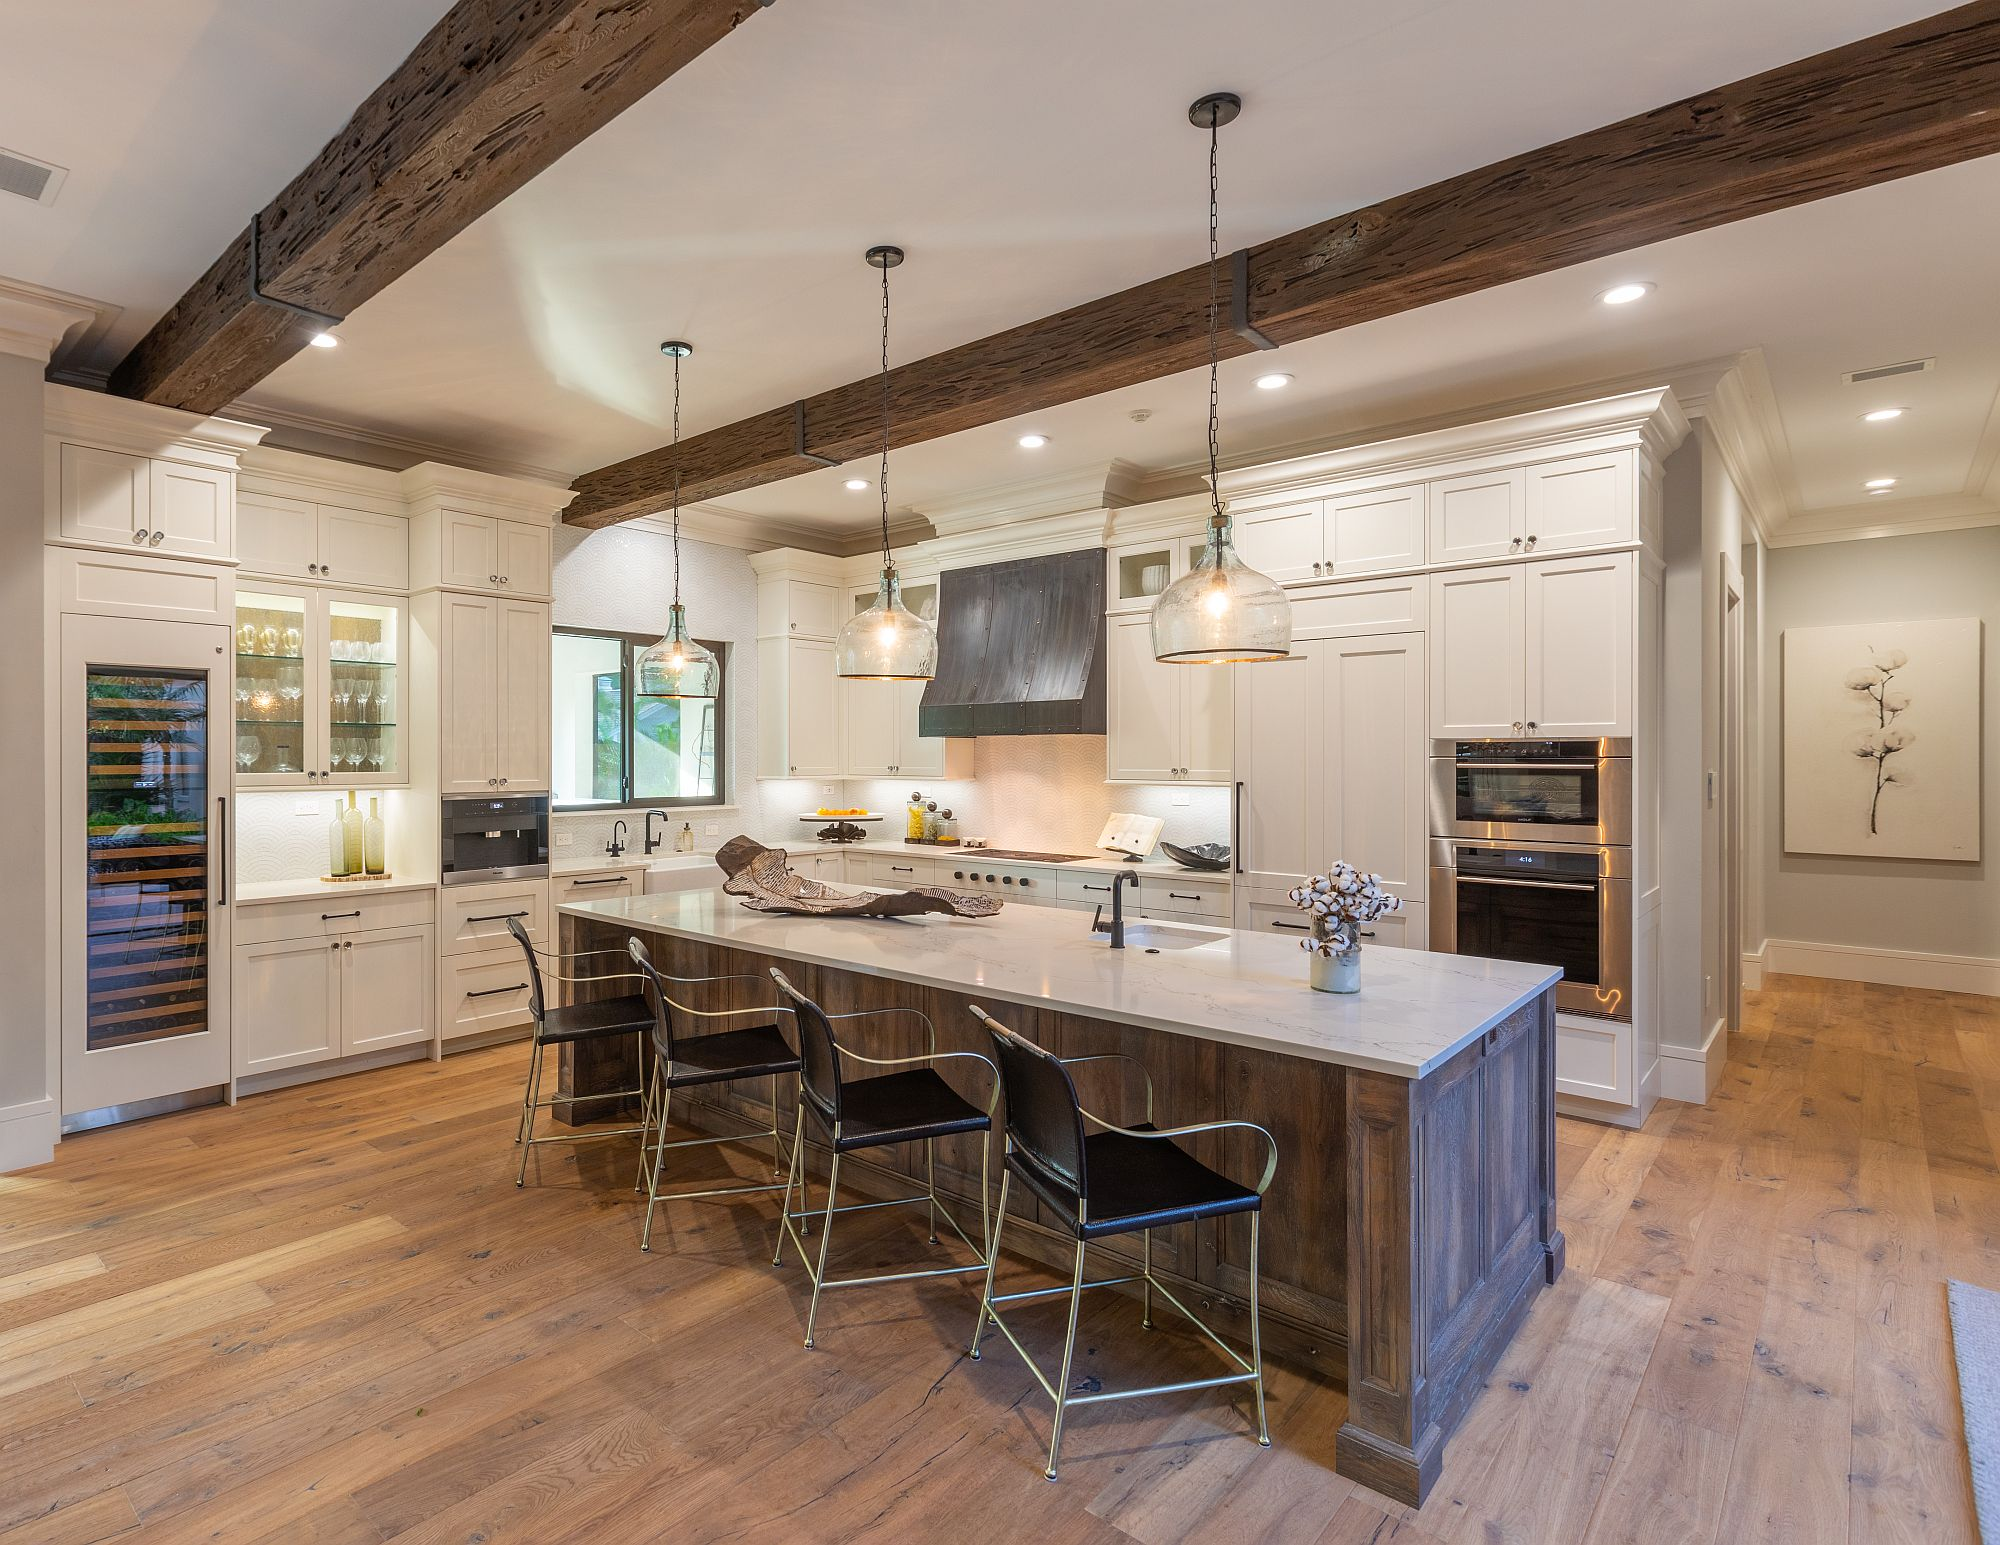 Spacious wood and white kitchen of the house with wooden ceiling beam and ample natural light